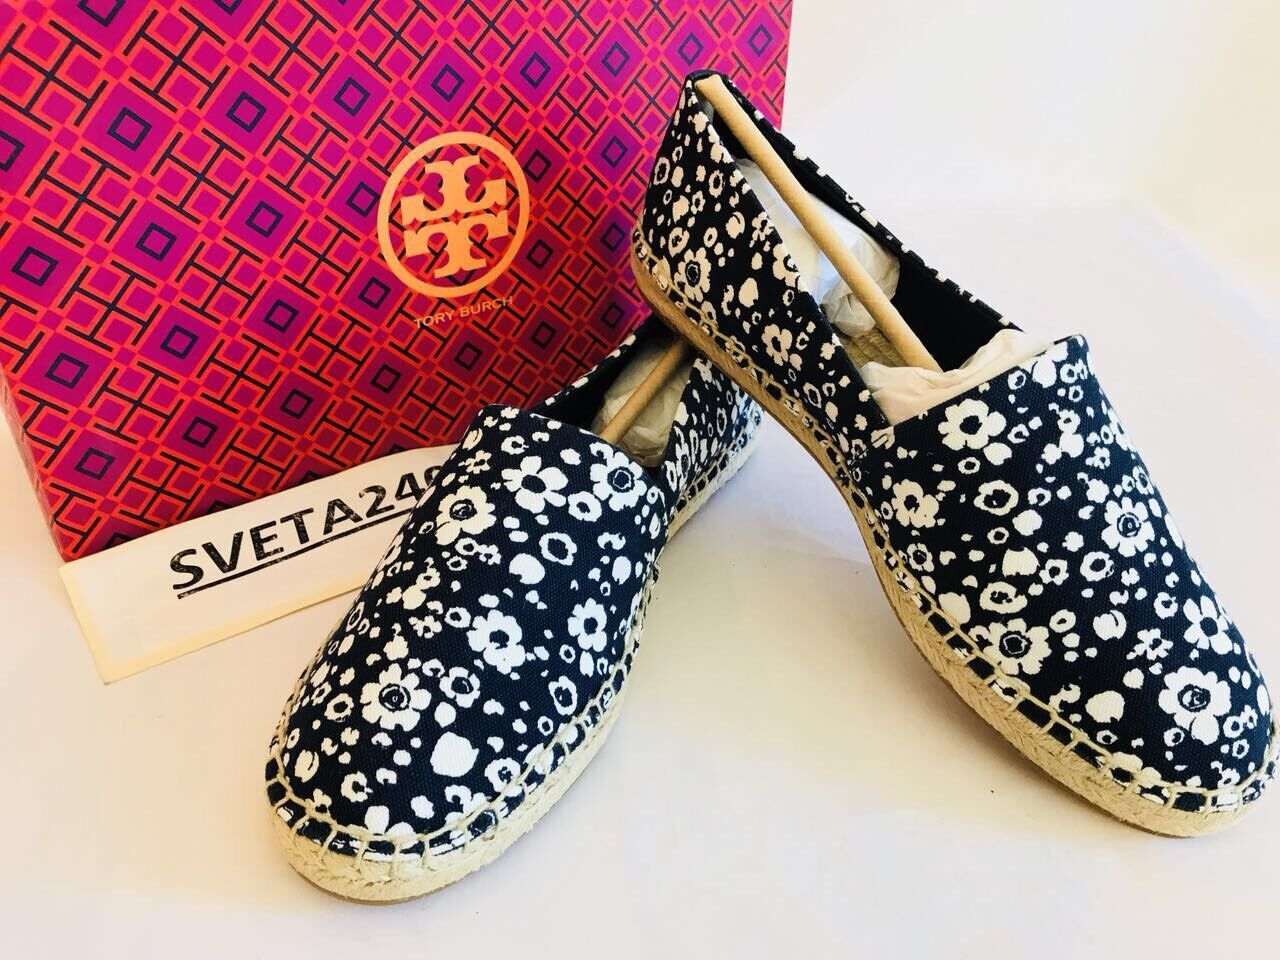 Tory Burch Lovers NIB Risa Navy Ivory Lovers Burch Floral Canvas  Espadrille Flat Shoes Sz 8 6bb50e